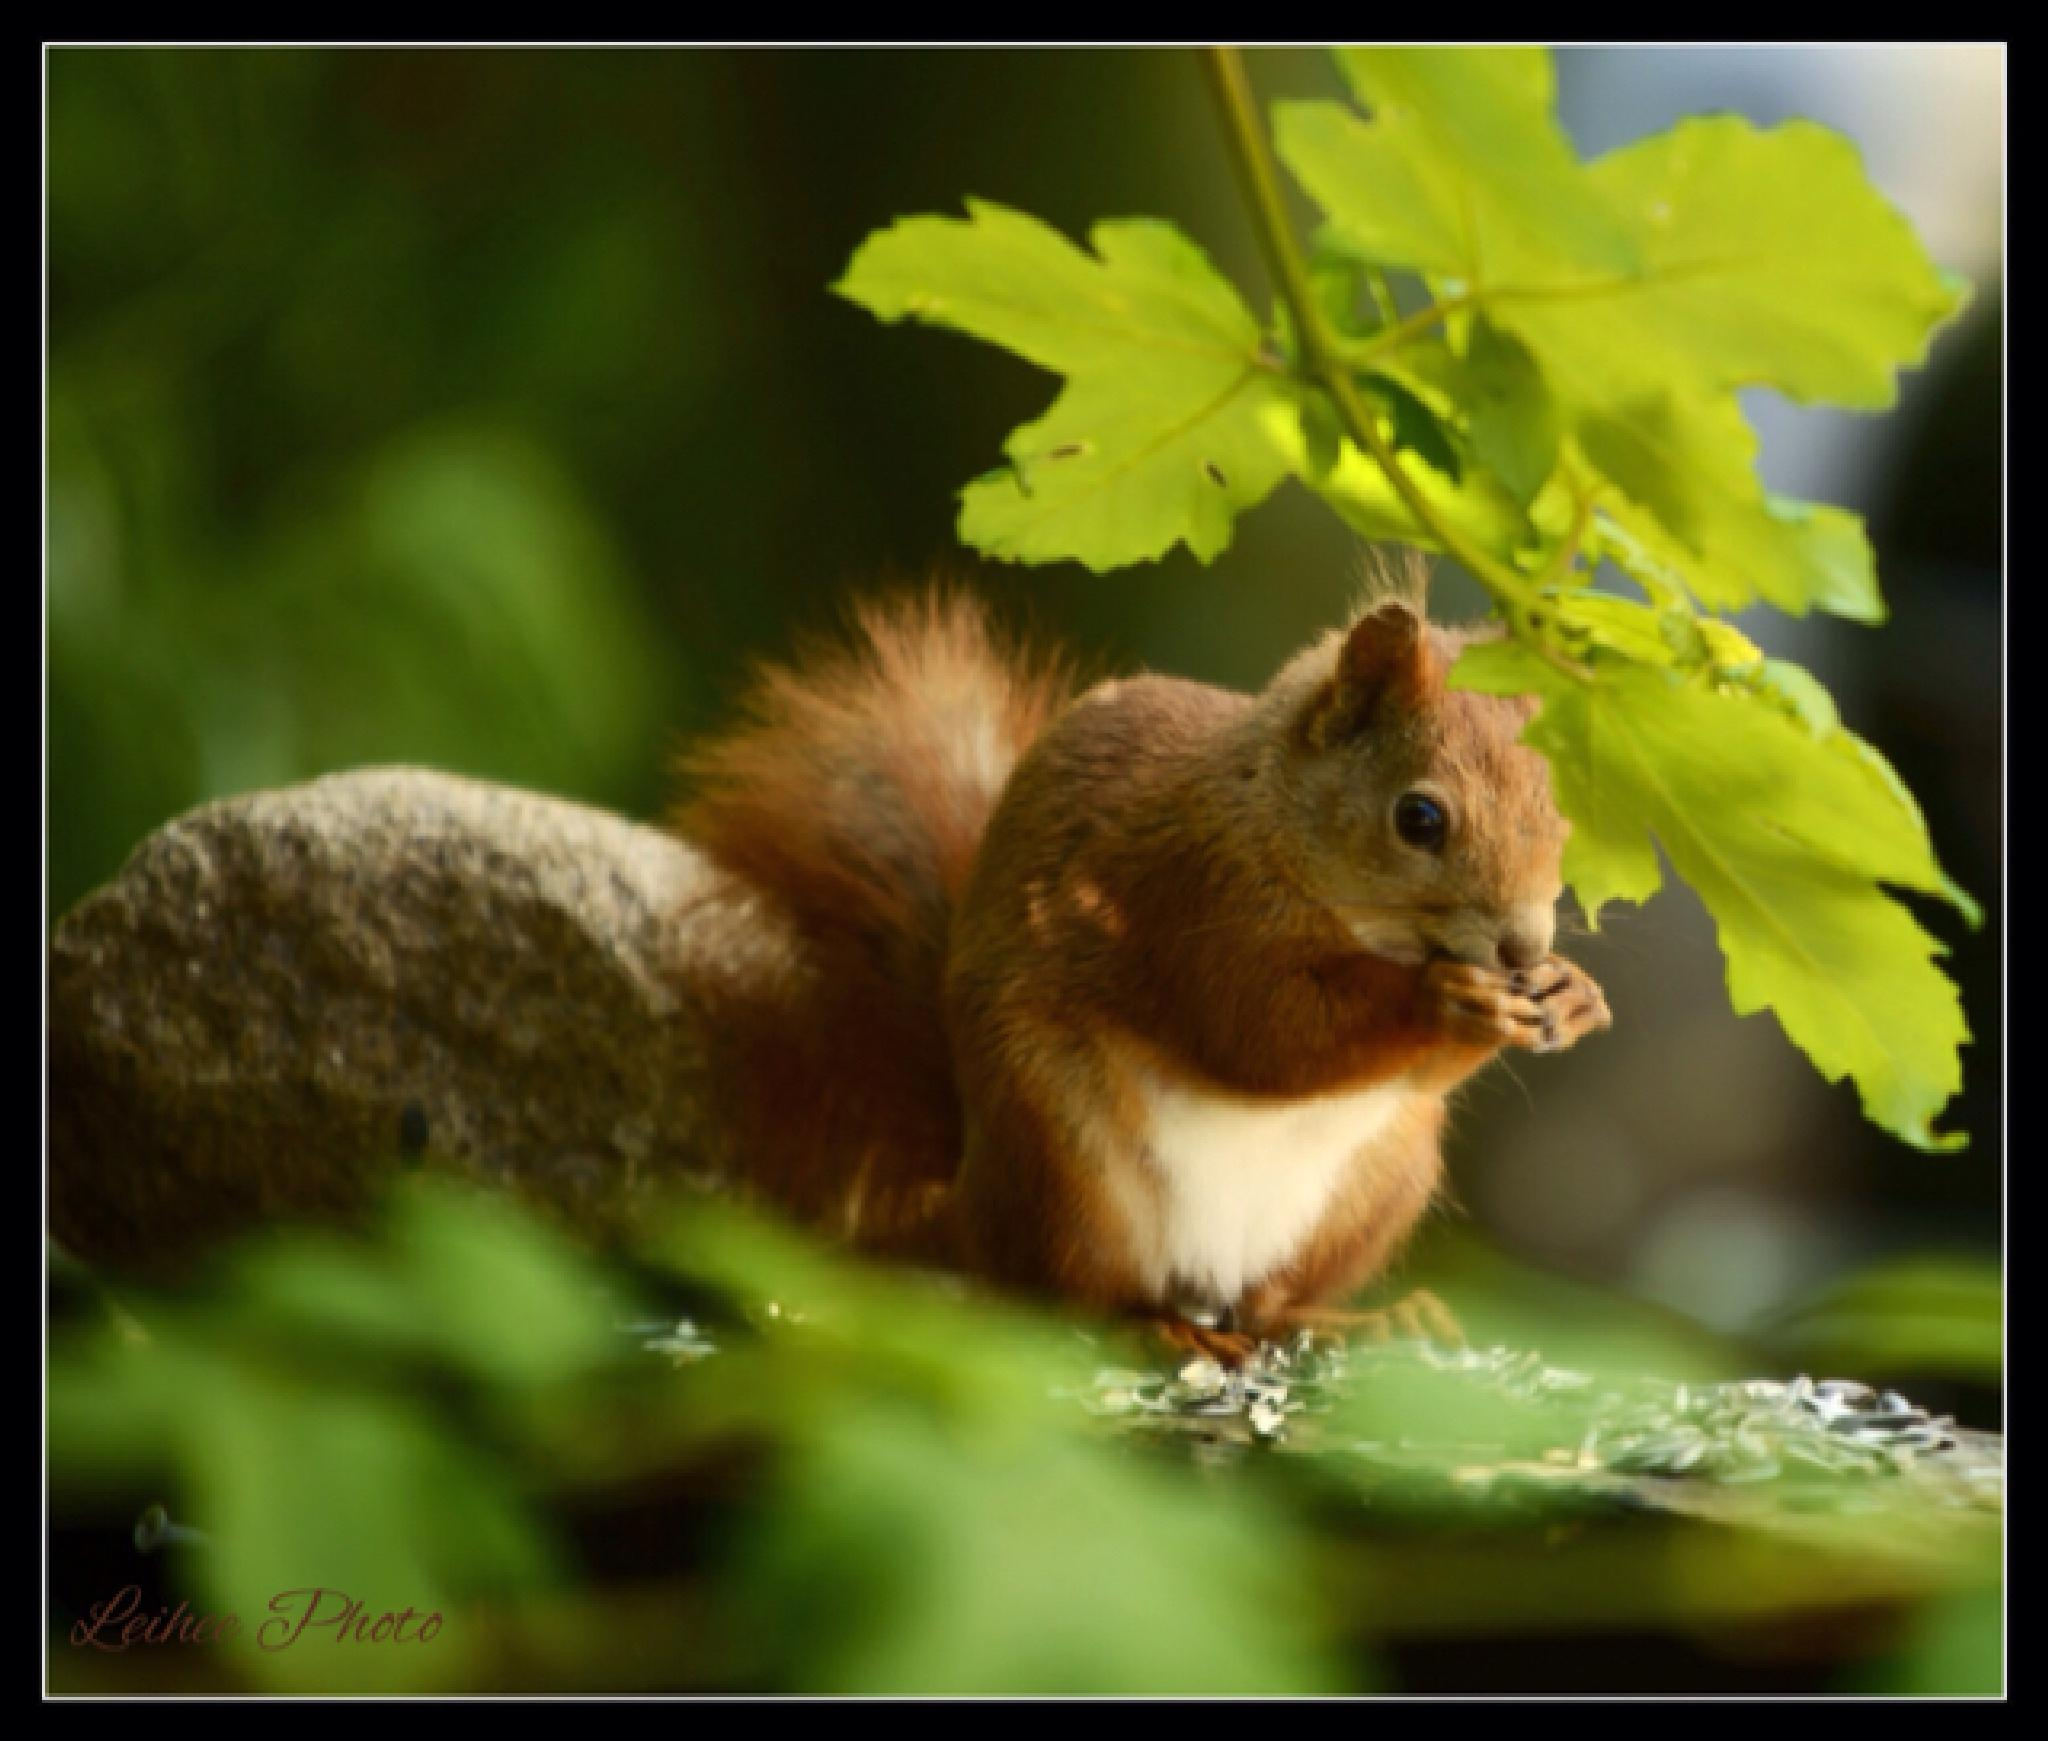 Squirrel by Leif Heering